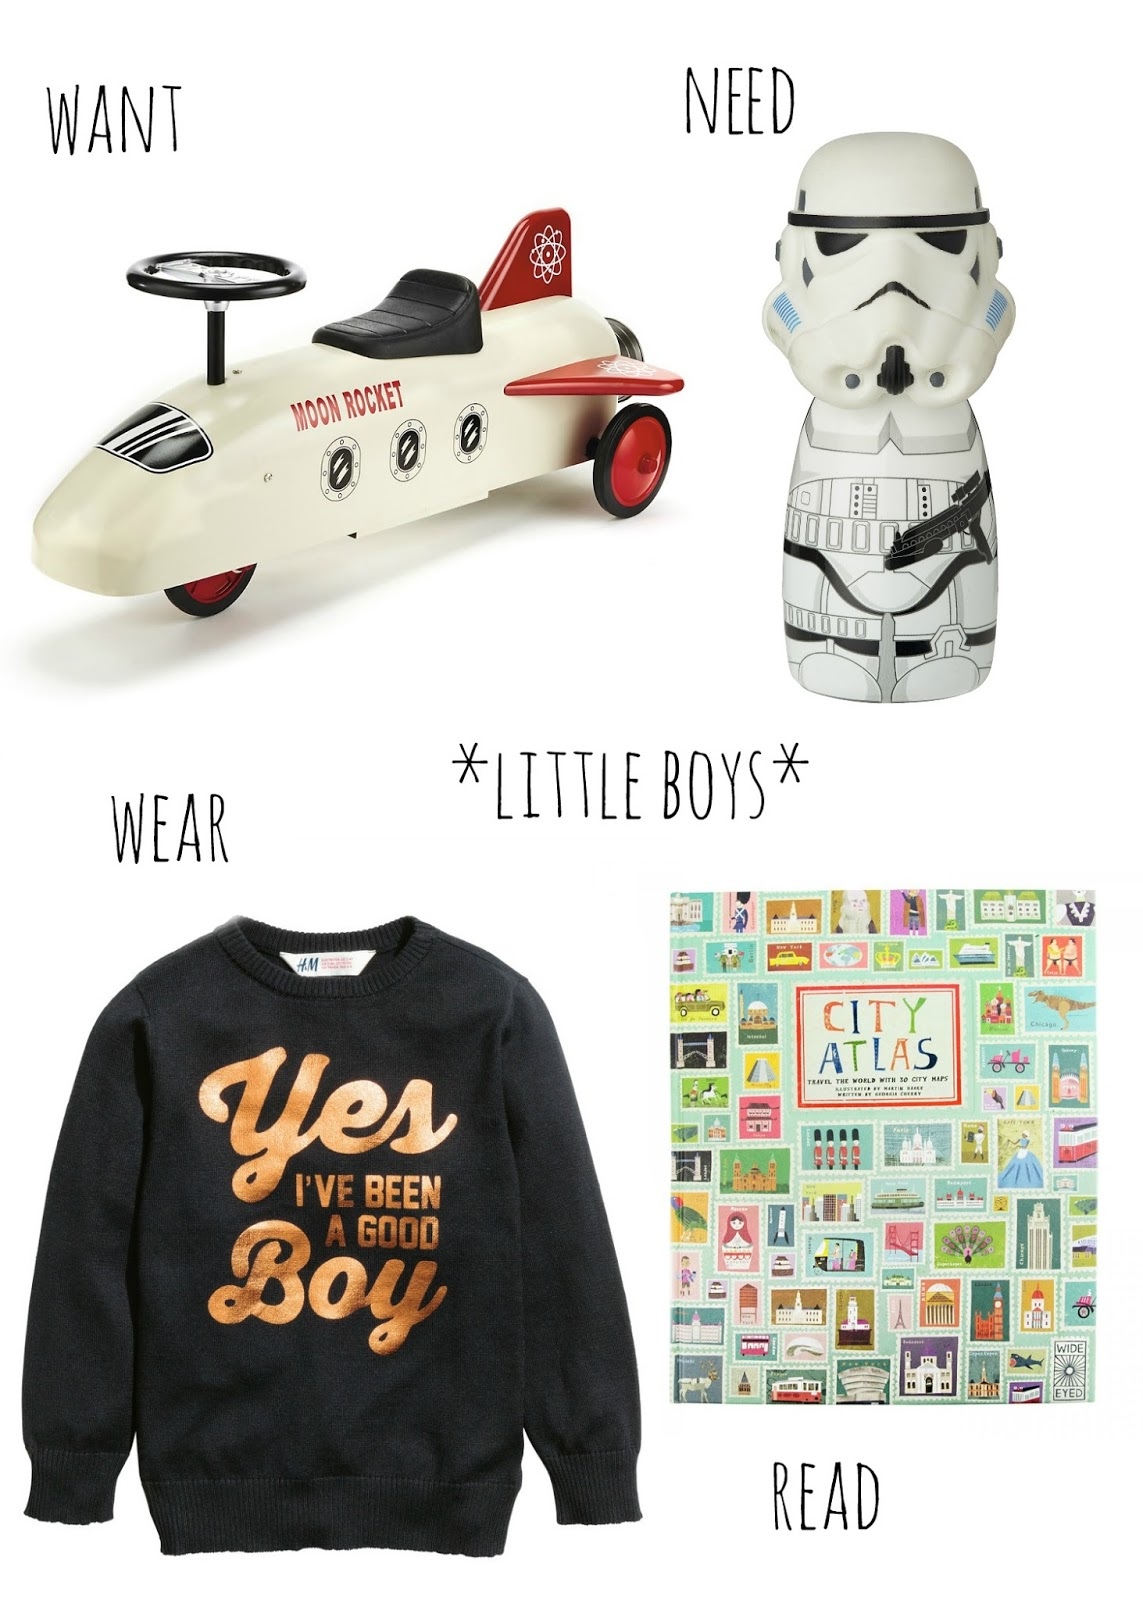 mamasVIb | V. I. BUYS: The simple Christmas gift guide for busy mums under pressure! Part 2 *KIDS*, kids christmas gifts, gifts for kids, boys gifts, girls gifts, christmas gift guide, mamasvib, stylist, guide to christmas, kids present ideas, babies first christmas, gifts for children, presents, buys for christmas, edited gift guide